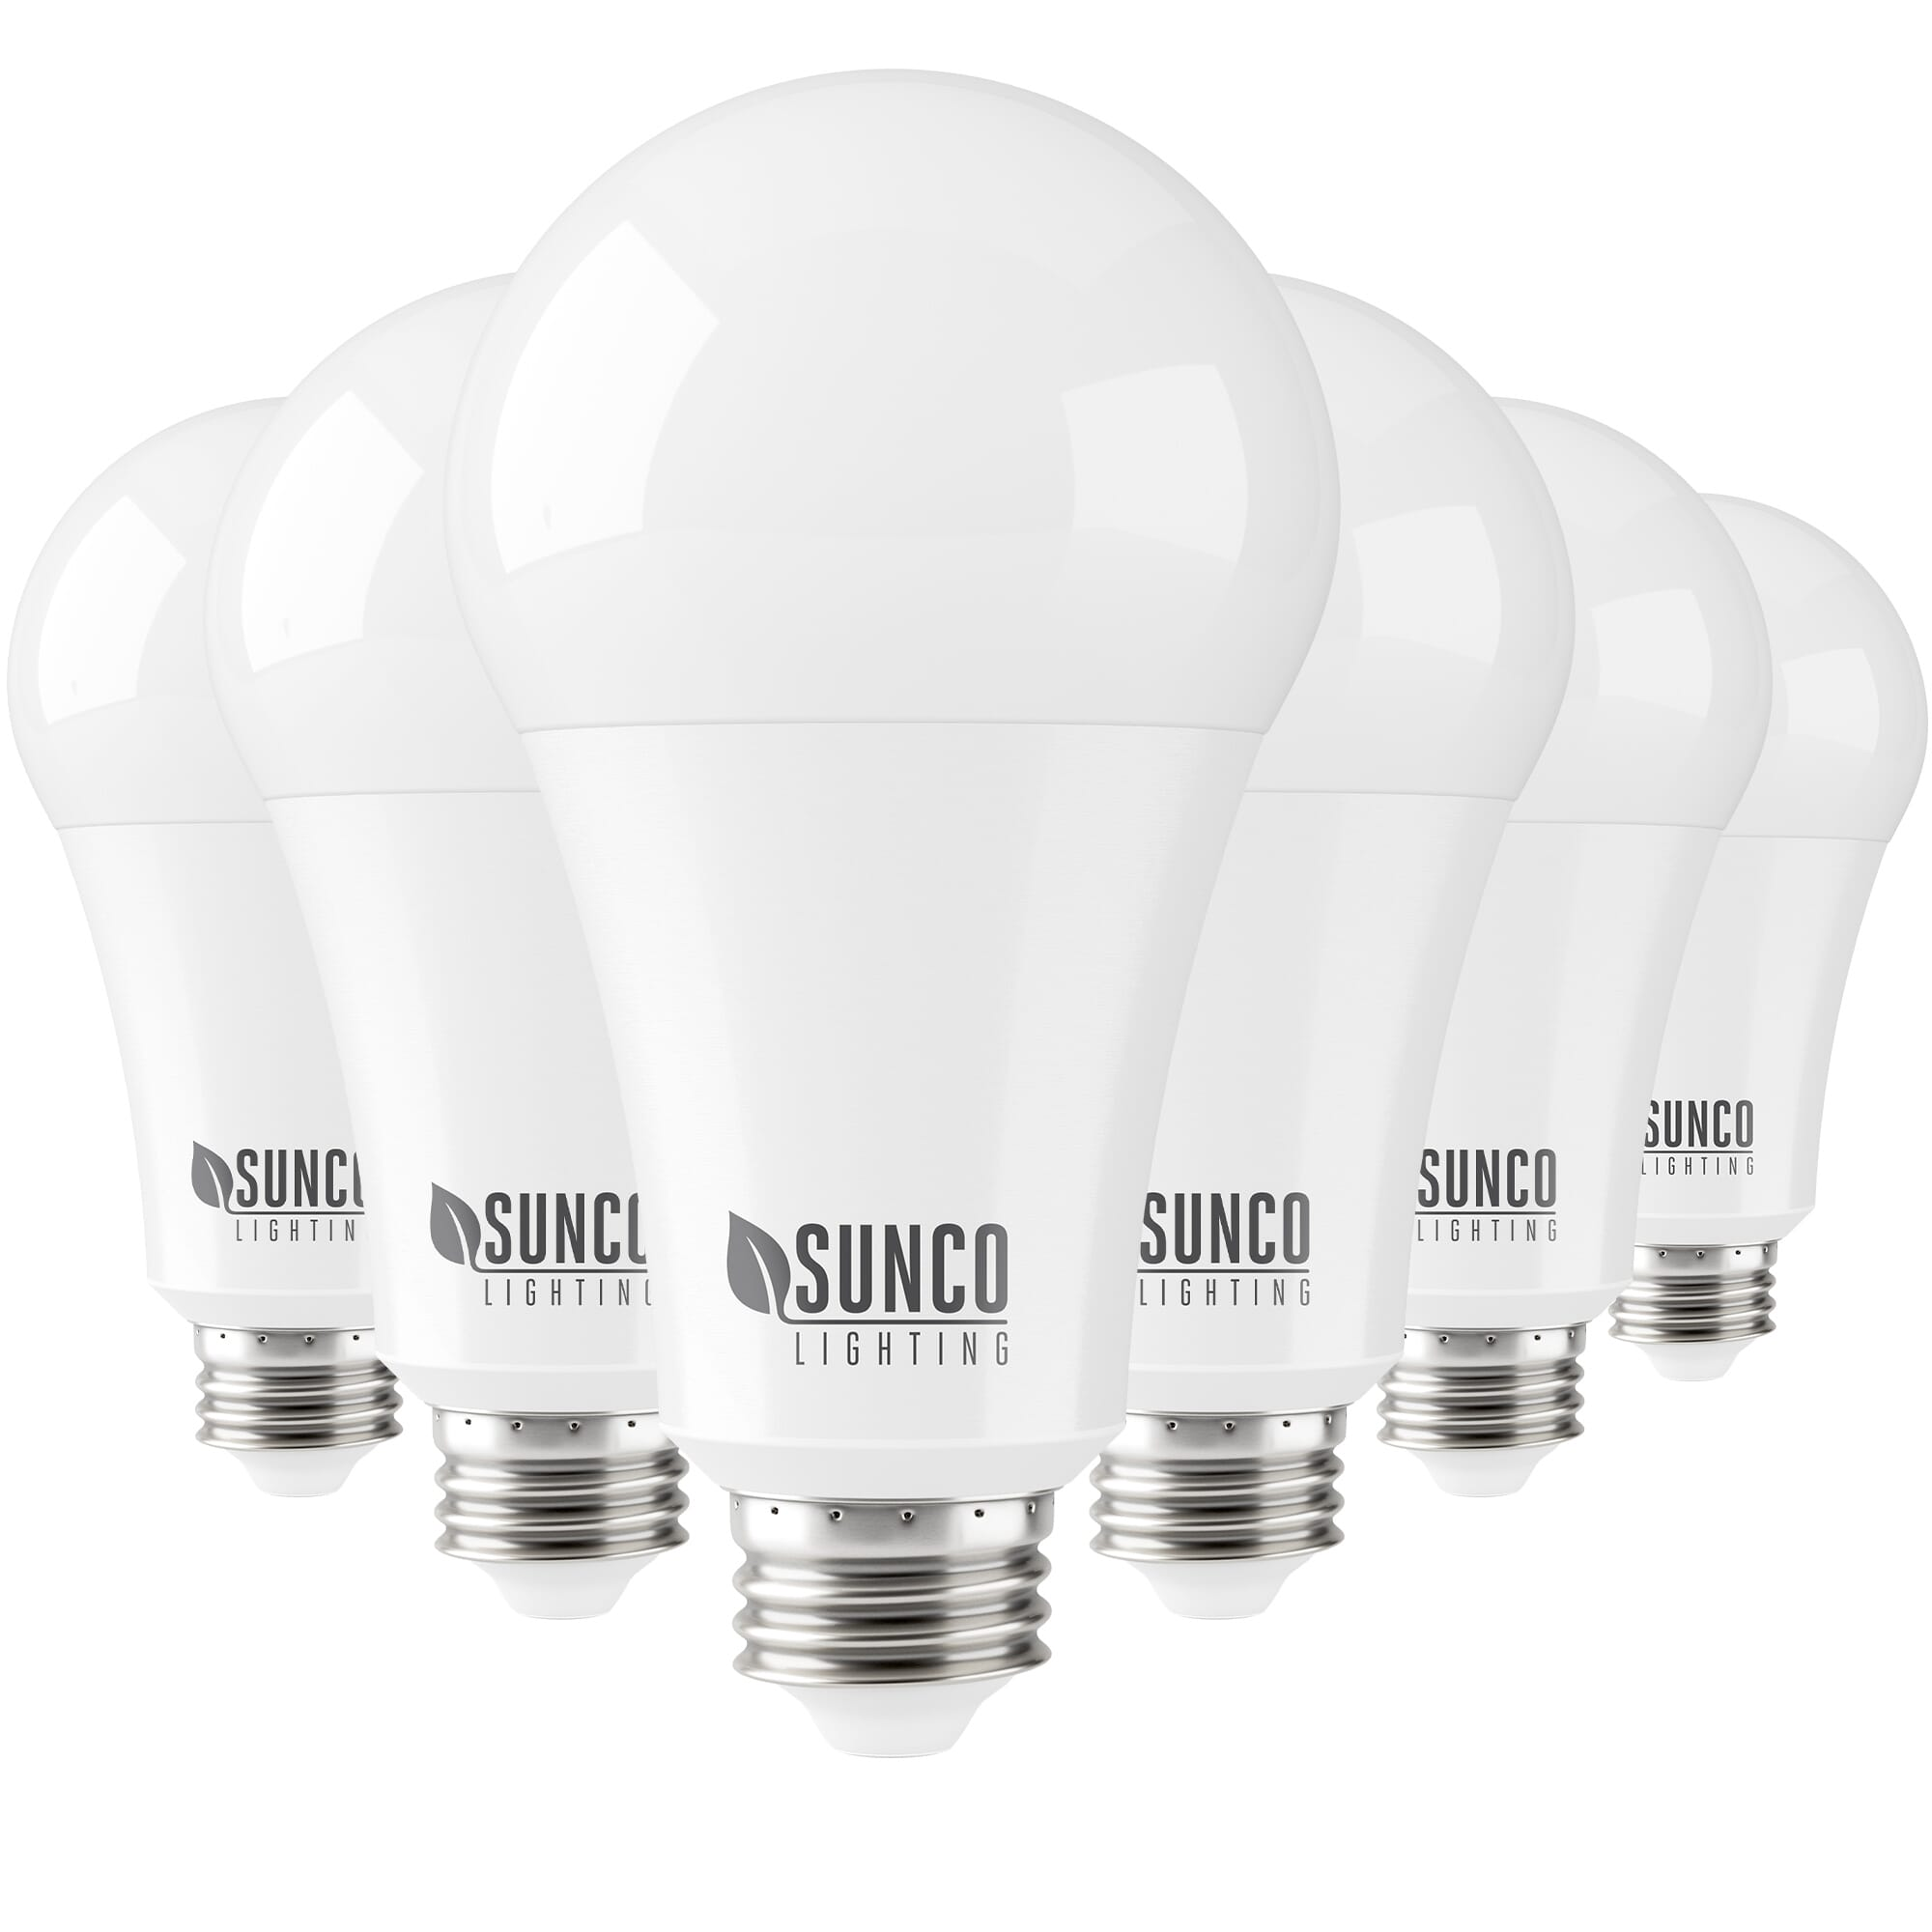 sunco lighting 6 pack a21 led bulb 22w 150w 5000k daylight 2550 lm e26 base dimmable indoor light for lamp ul energy star